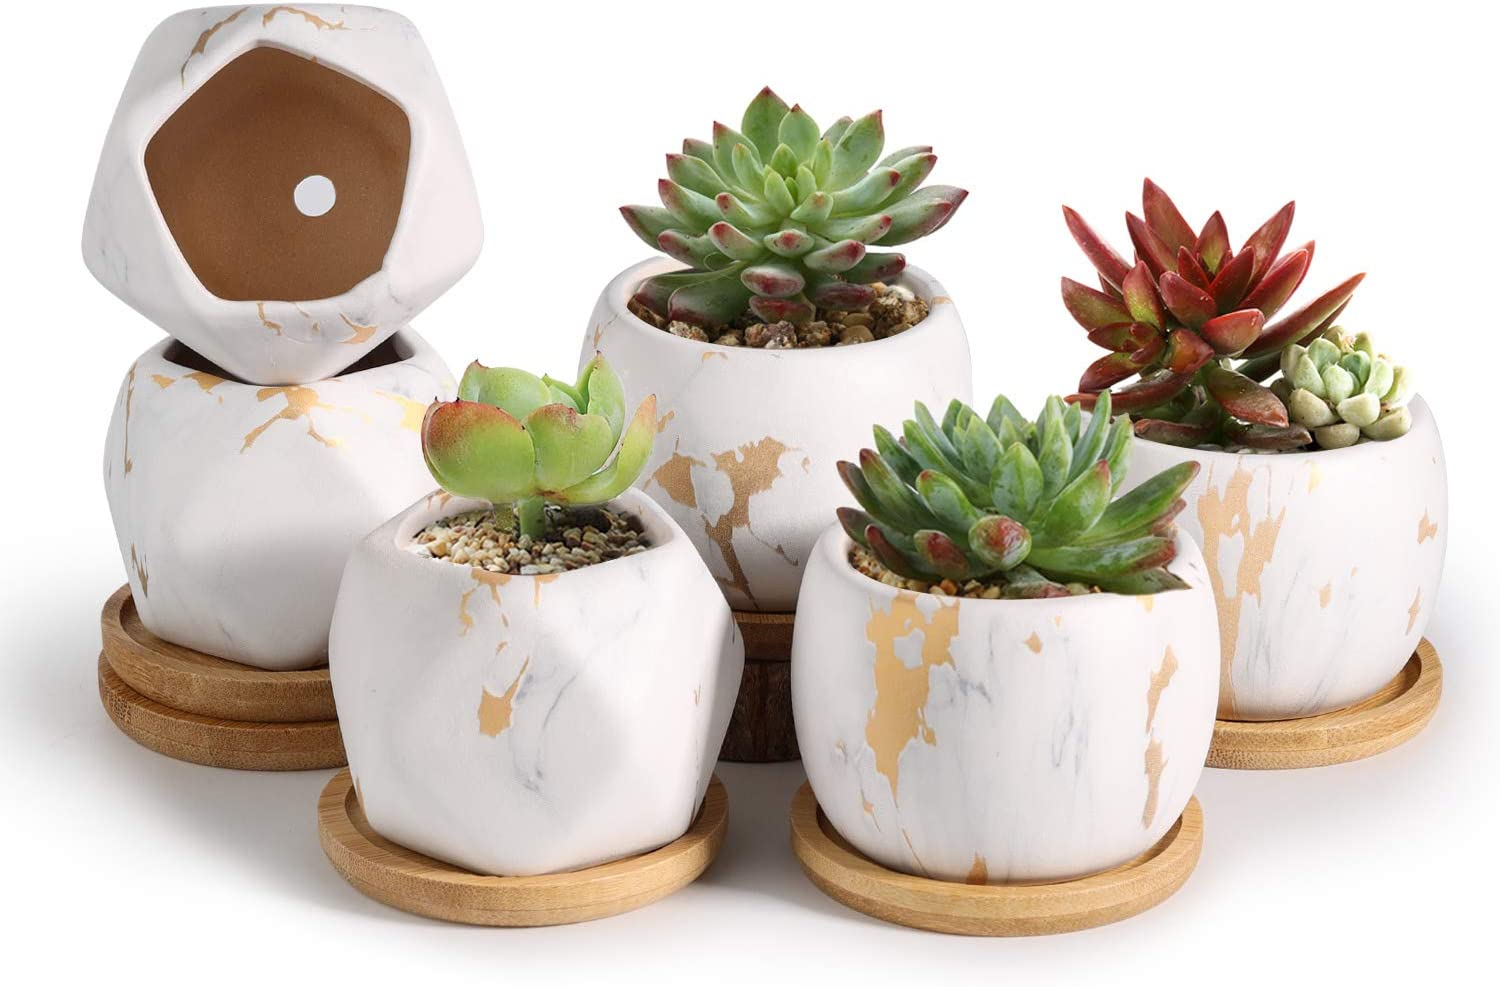 T4U 2.5 Inch Succulent Garden Pot with Bamboo Tray, Small Ceramic White and Gold Windowsill Plant Pot Cactus Herb Planter for Home and Office Decoration Birthday Wedding Christmas Gift Pack of 6